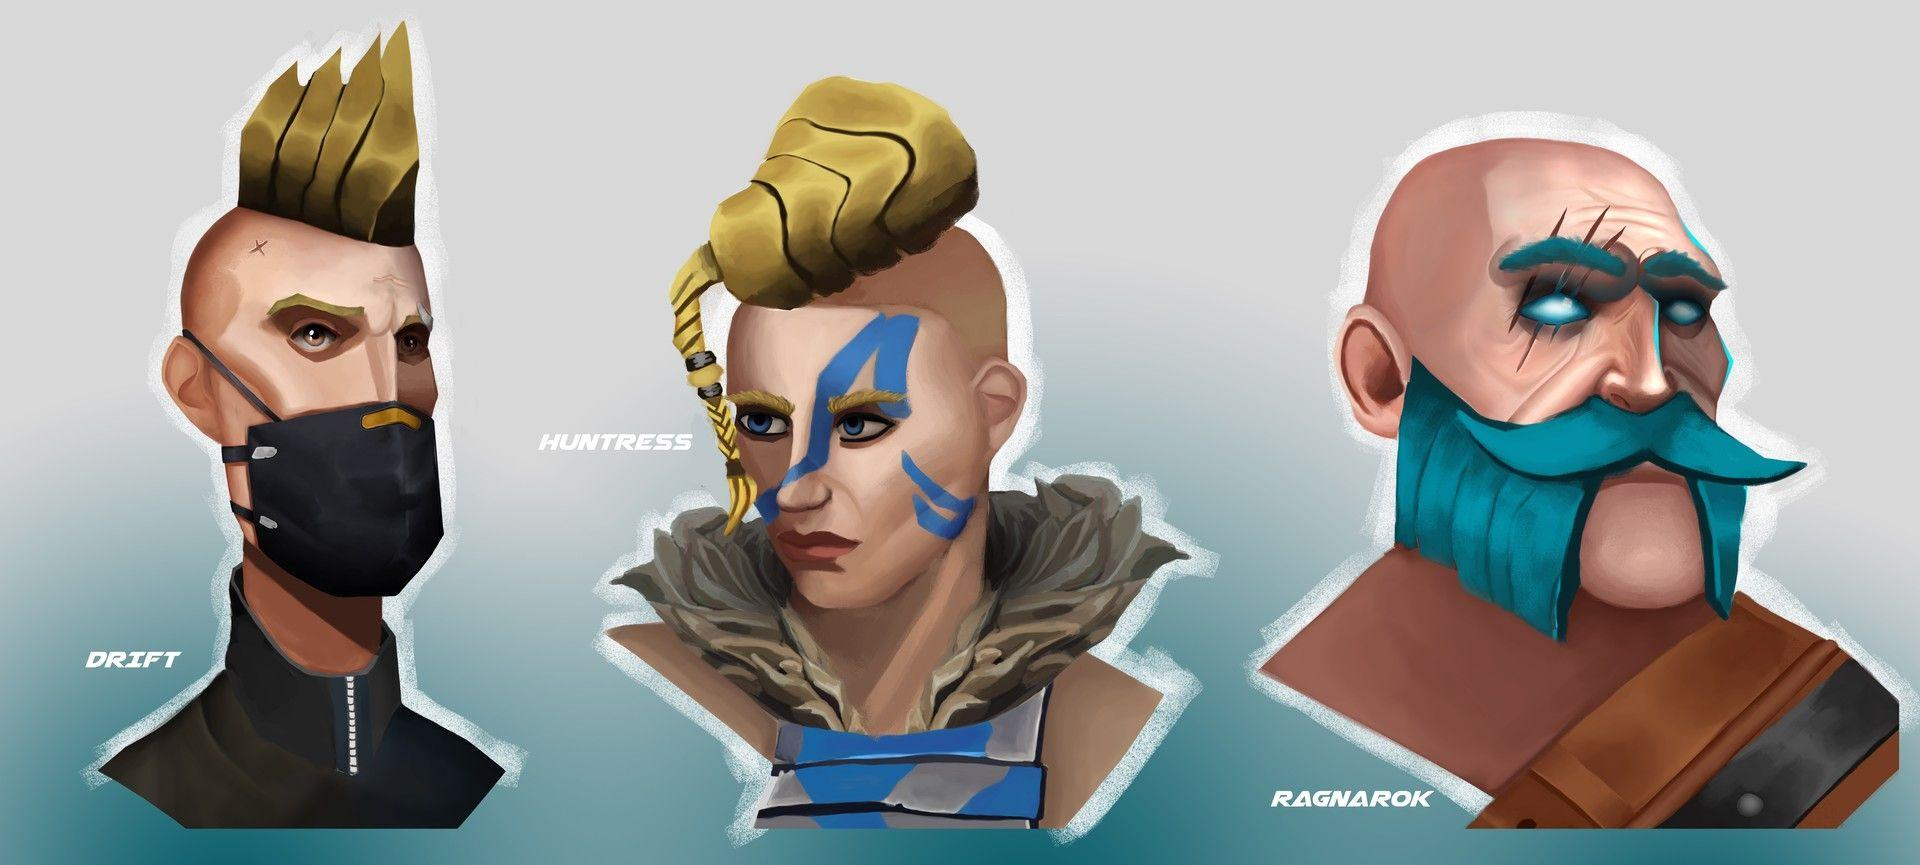 Fortnite Drift Huntress Ragnarok Portraits #4239 Wallpapers and Free ...